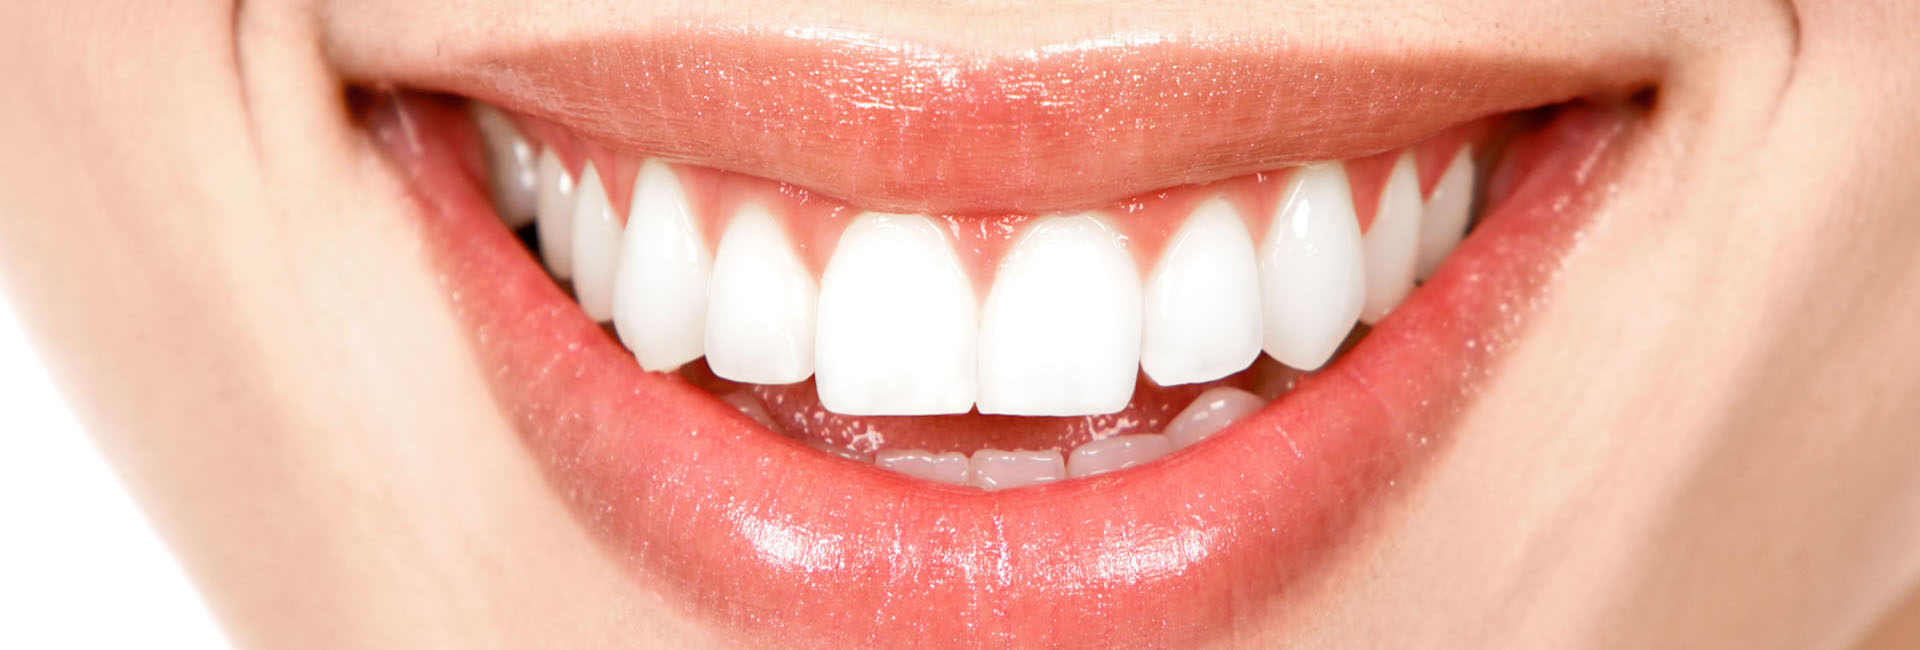 arrfox, clinica dental, condesa, sonrisa, perfecta